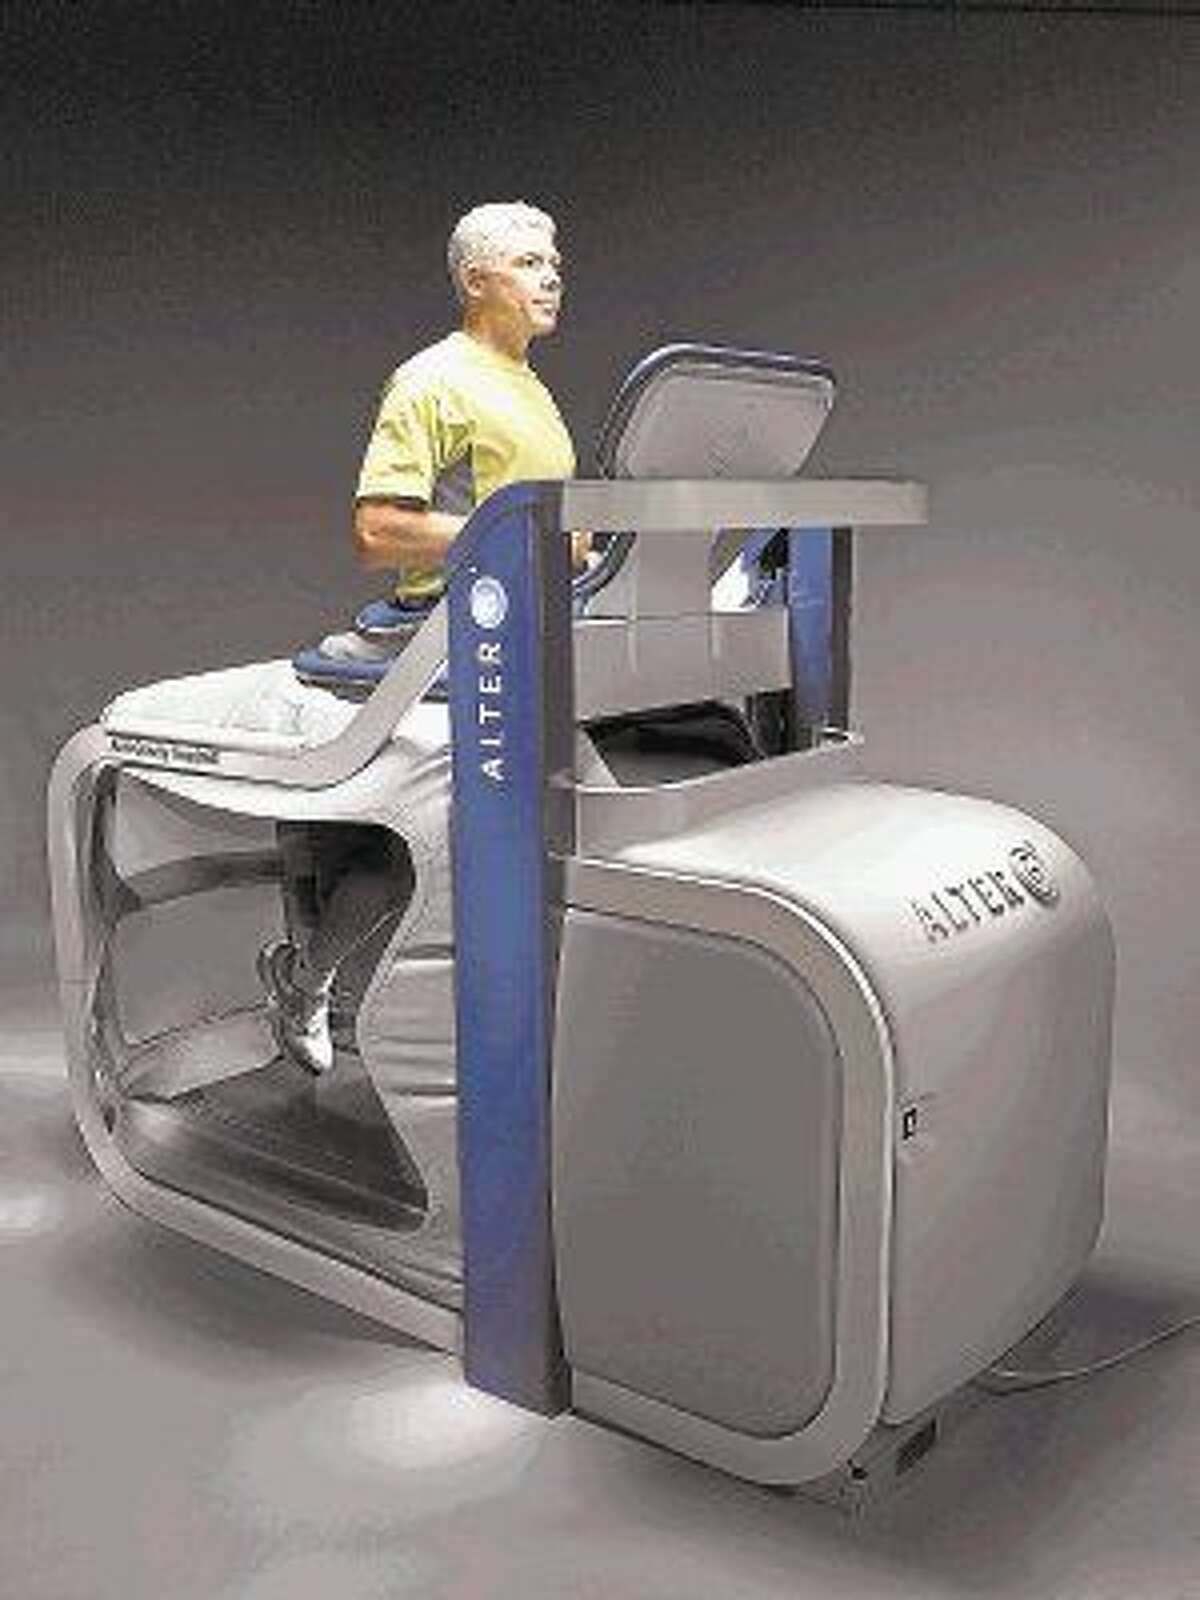 The AlterG Anti-Gravity Treadmill at Performance Medicine, located on the campus of CHI St. Luke's Health-The Woodlands Hospital in the Medical Arts Center Building III (MAC III) at 17450 St. Luke's Way, Suite 350.